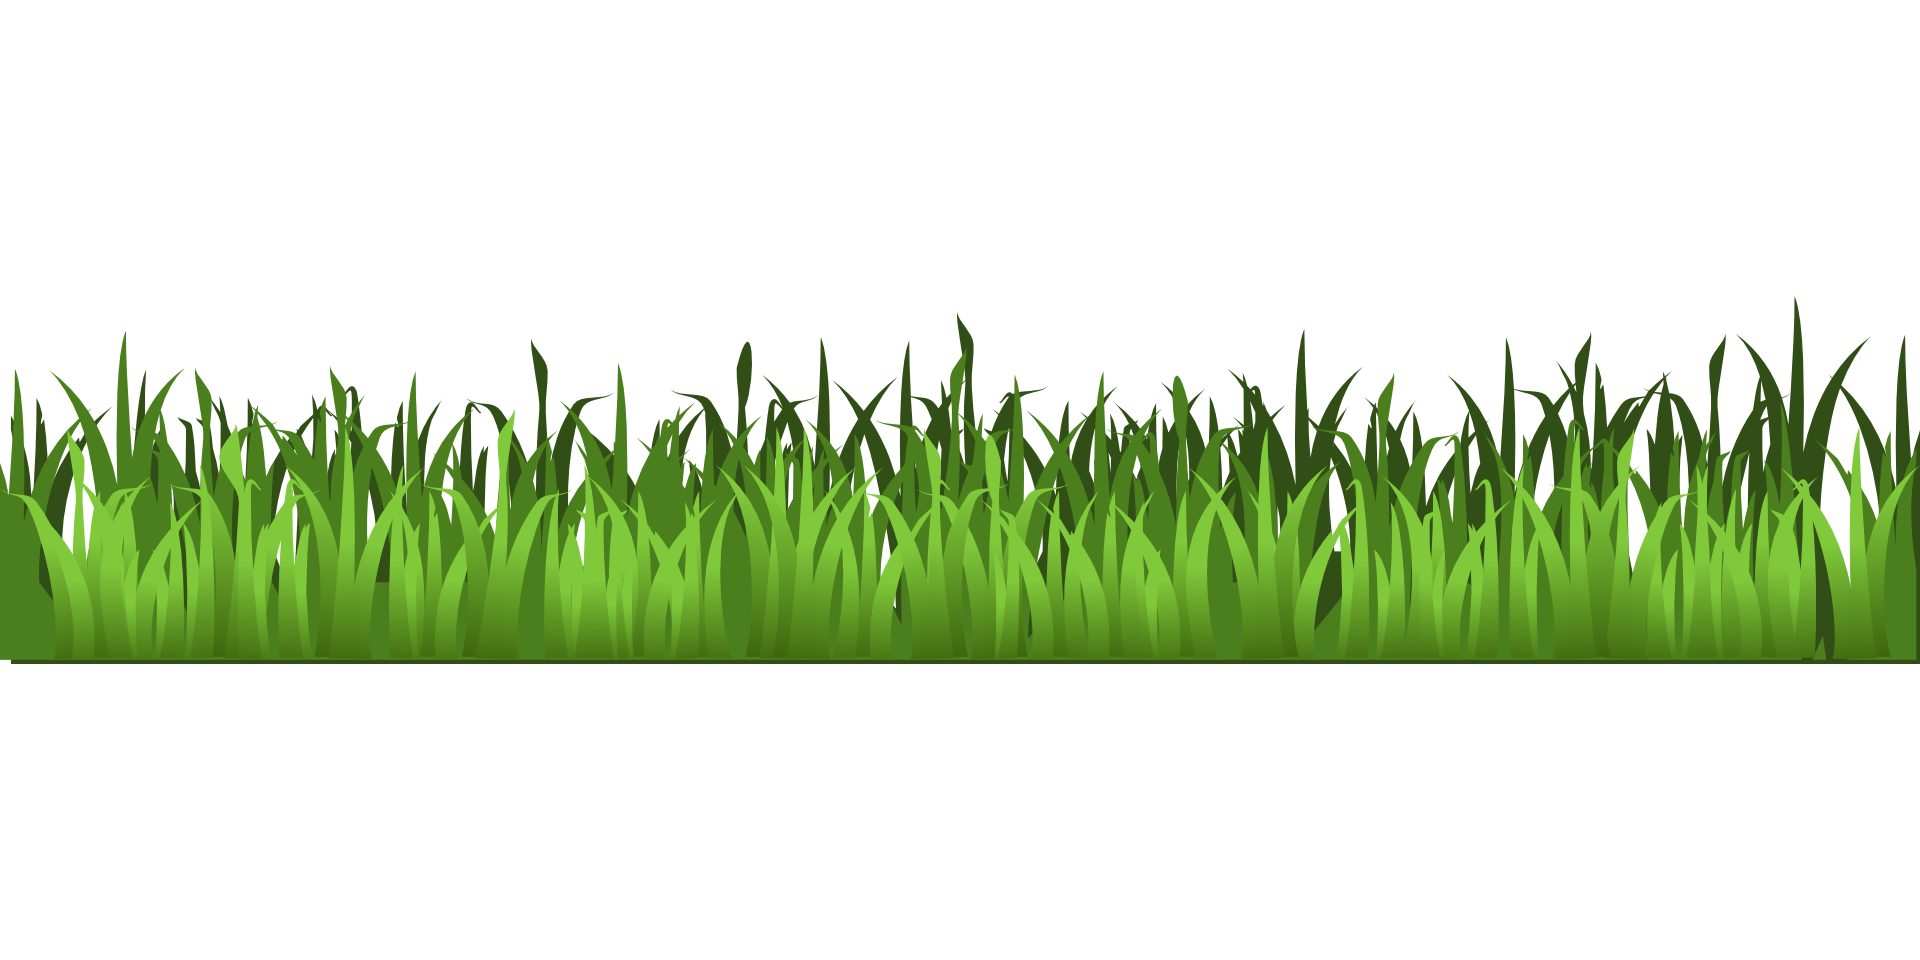 Green grass clipart jpg transparent Meadow green grass clipart isolated stock photo by nobacks ... jpg transparent